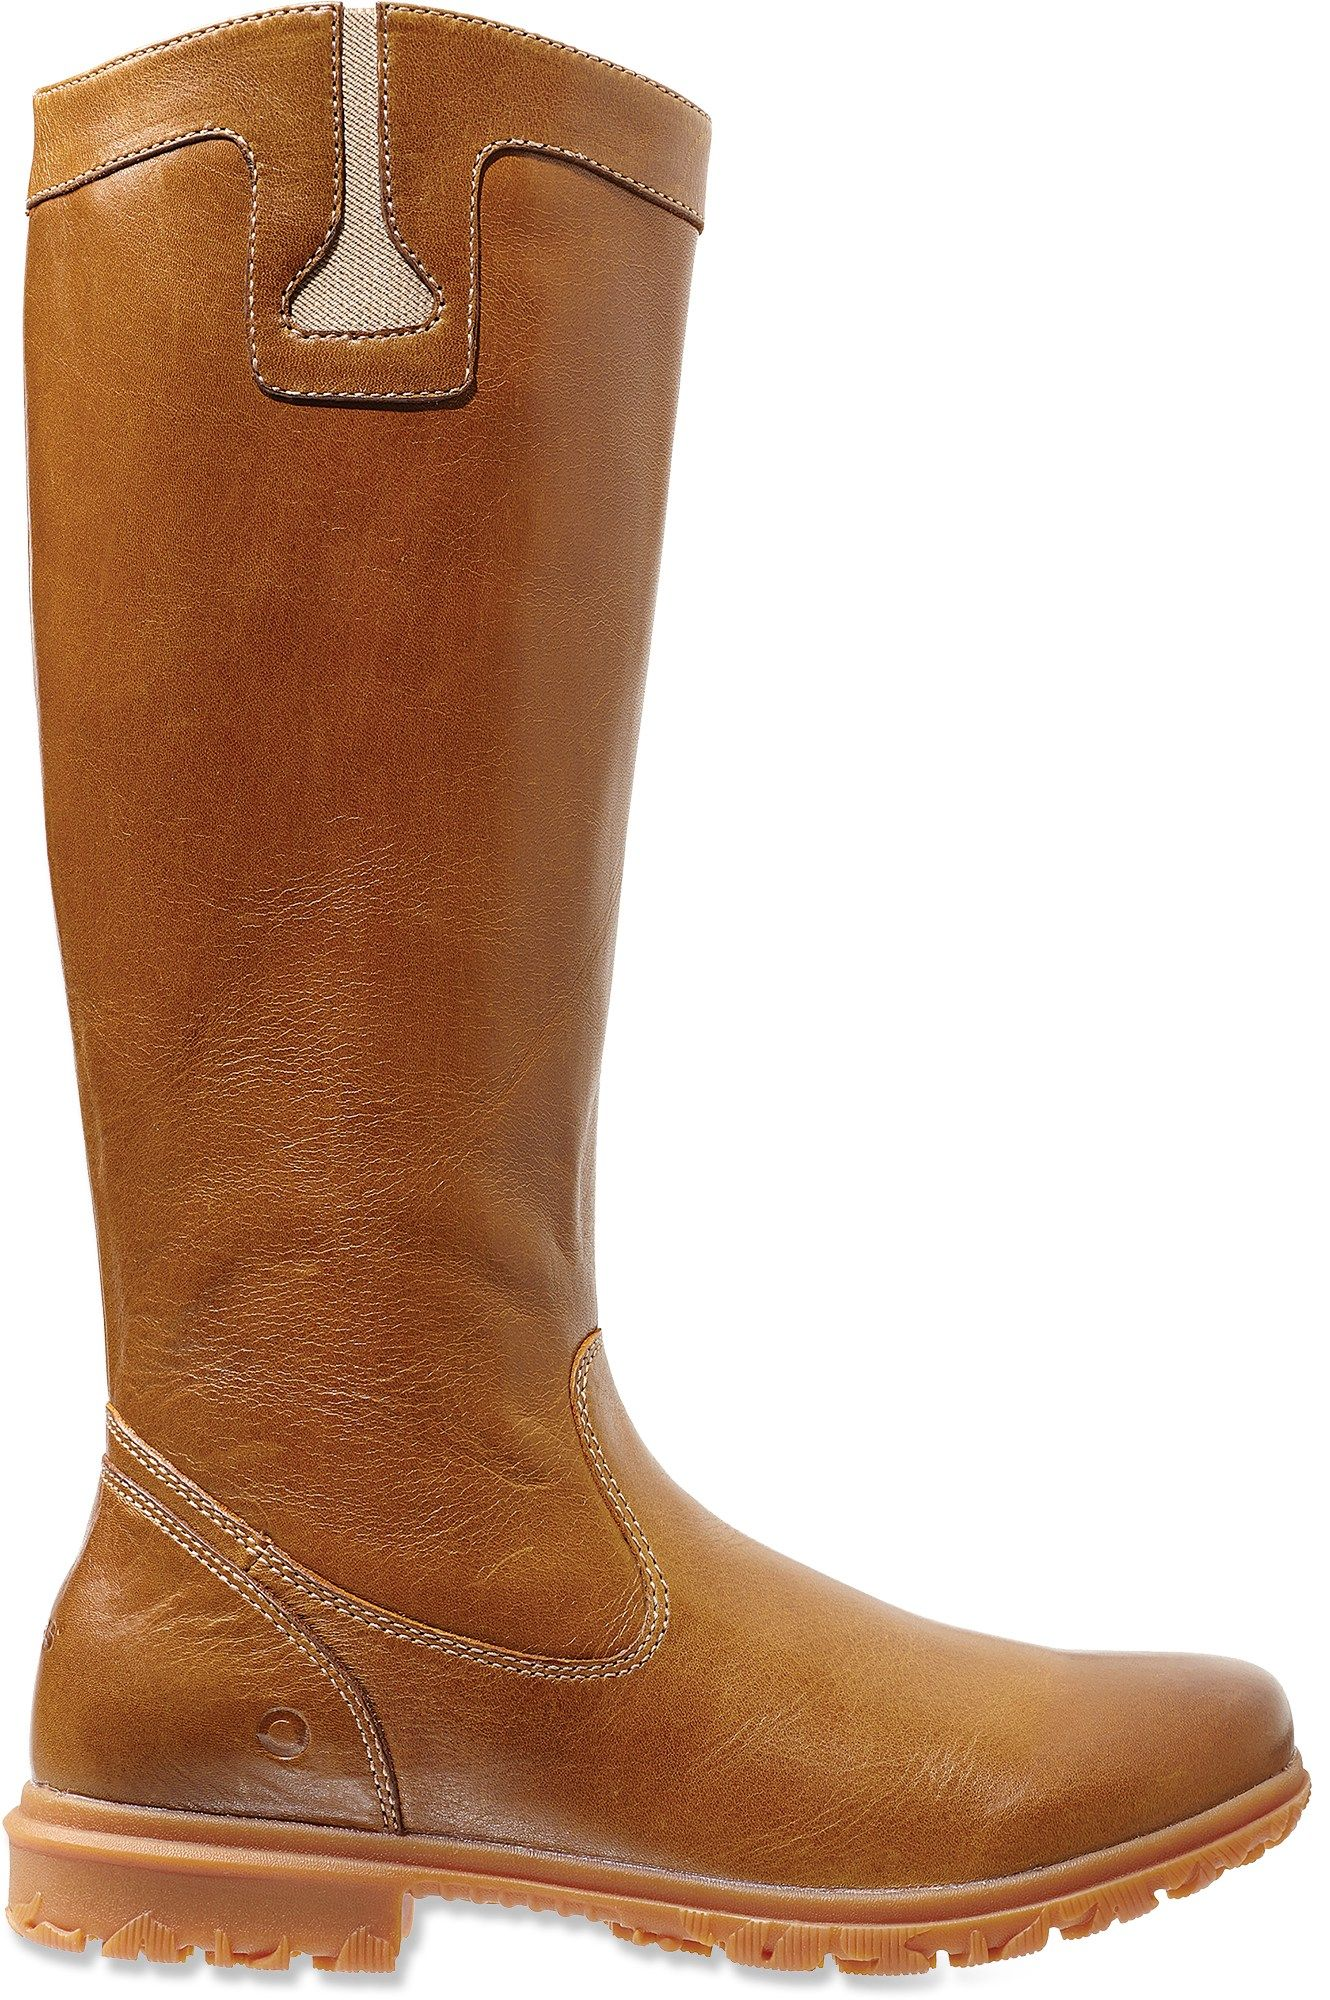 Bogs Pearl Tall Boots - Women's